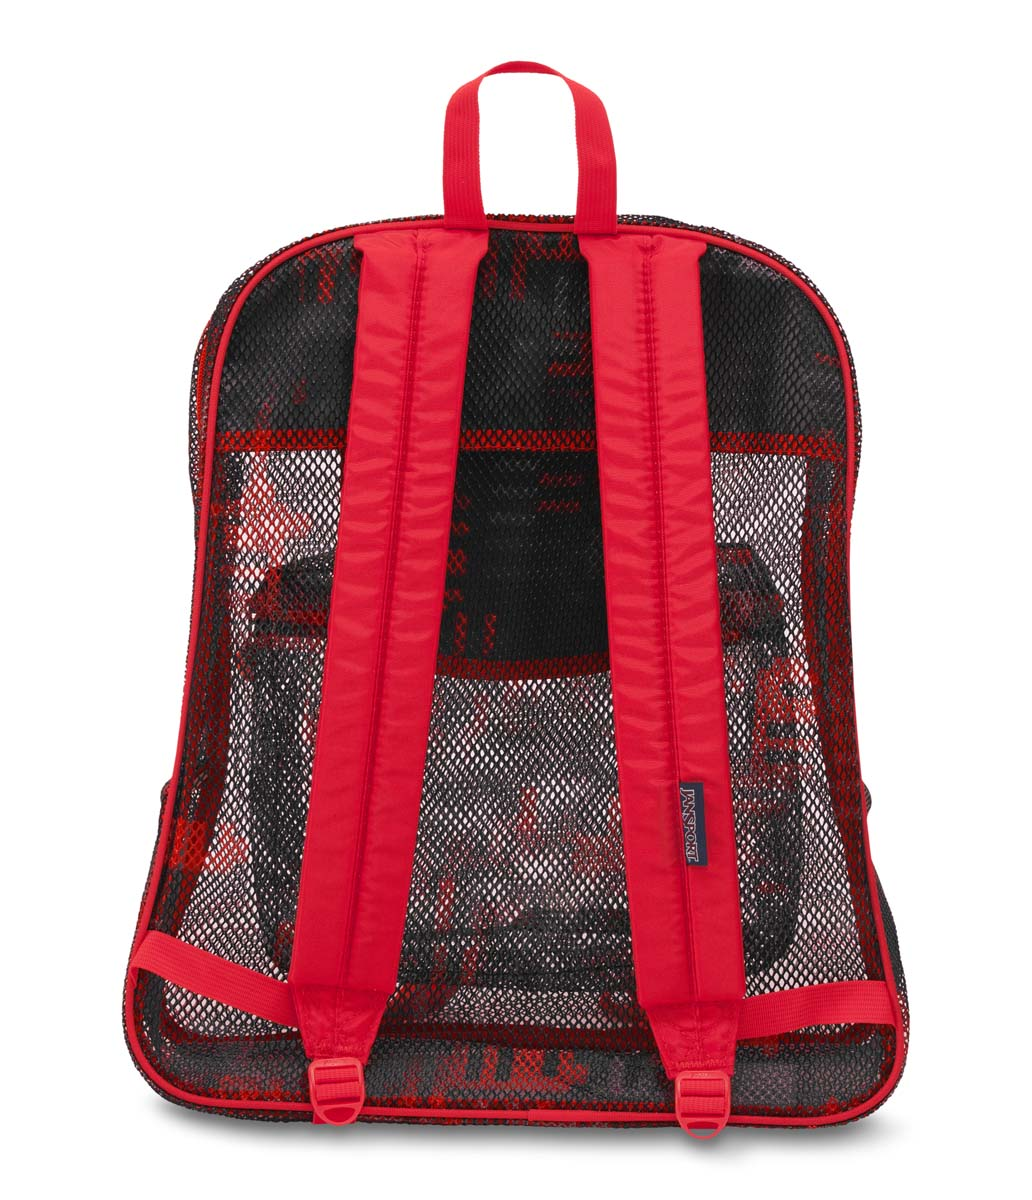 JanSport Mesh Pack School Backpack - High Risk Red Checkers ...